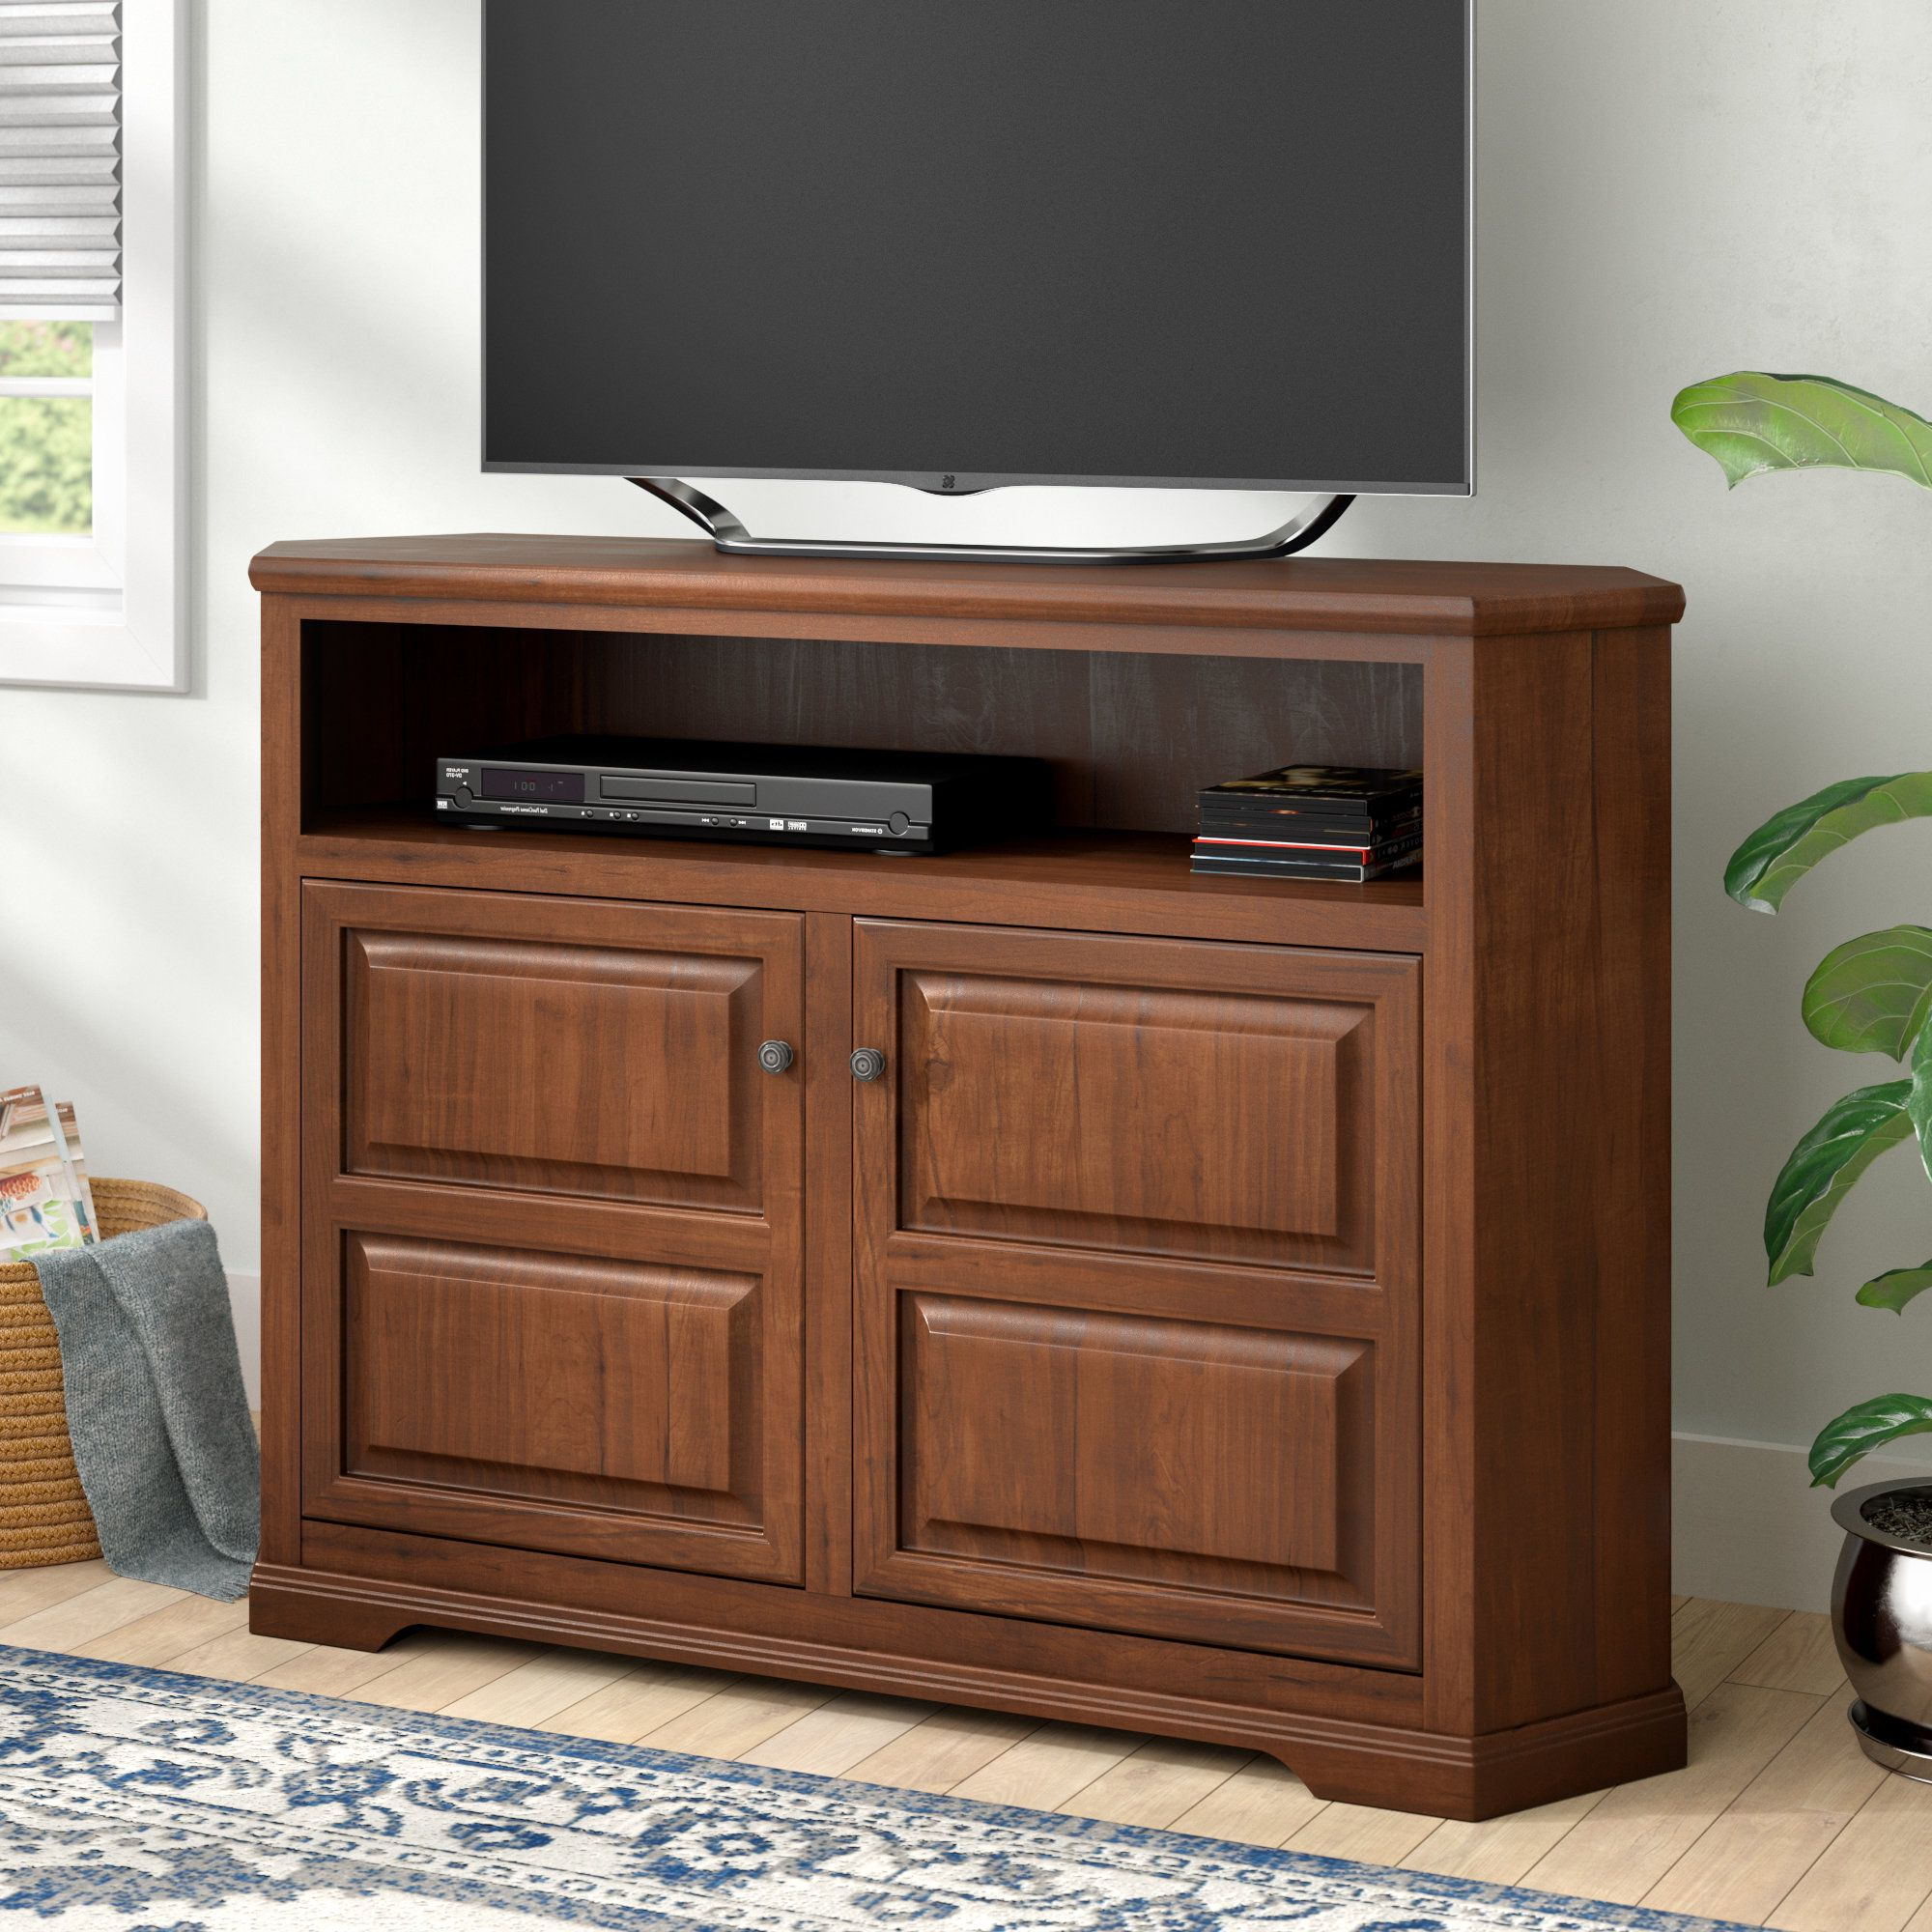 """Favorite Giltner Solid Wood Tv Stands For Tvs Up To 65"""" Intended For Wentzel Solid Wood Corner Tv Stand For Tvs Up To  (View 4 of 25)"""